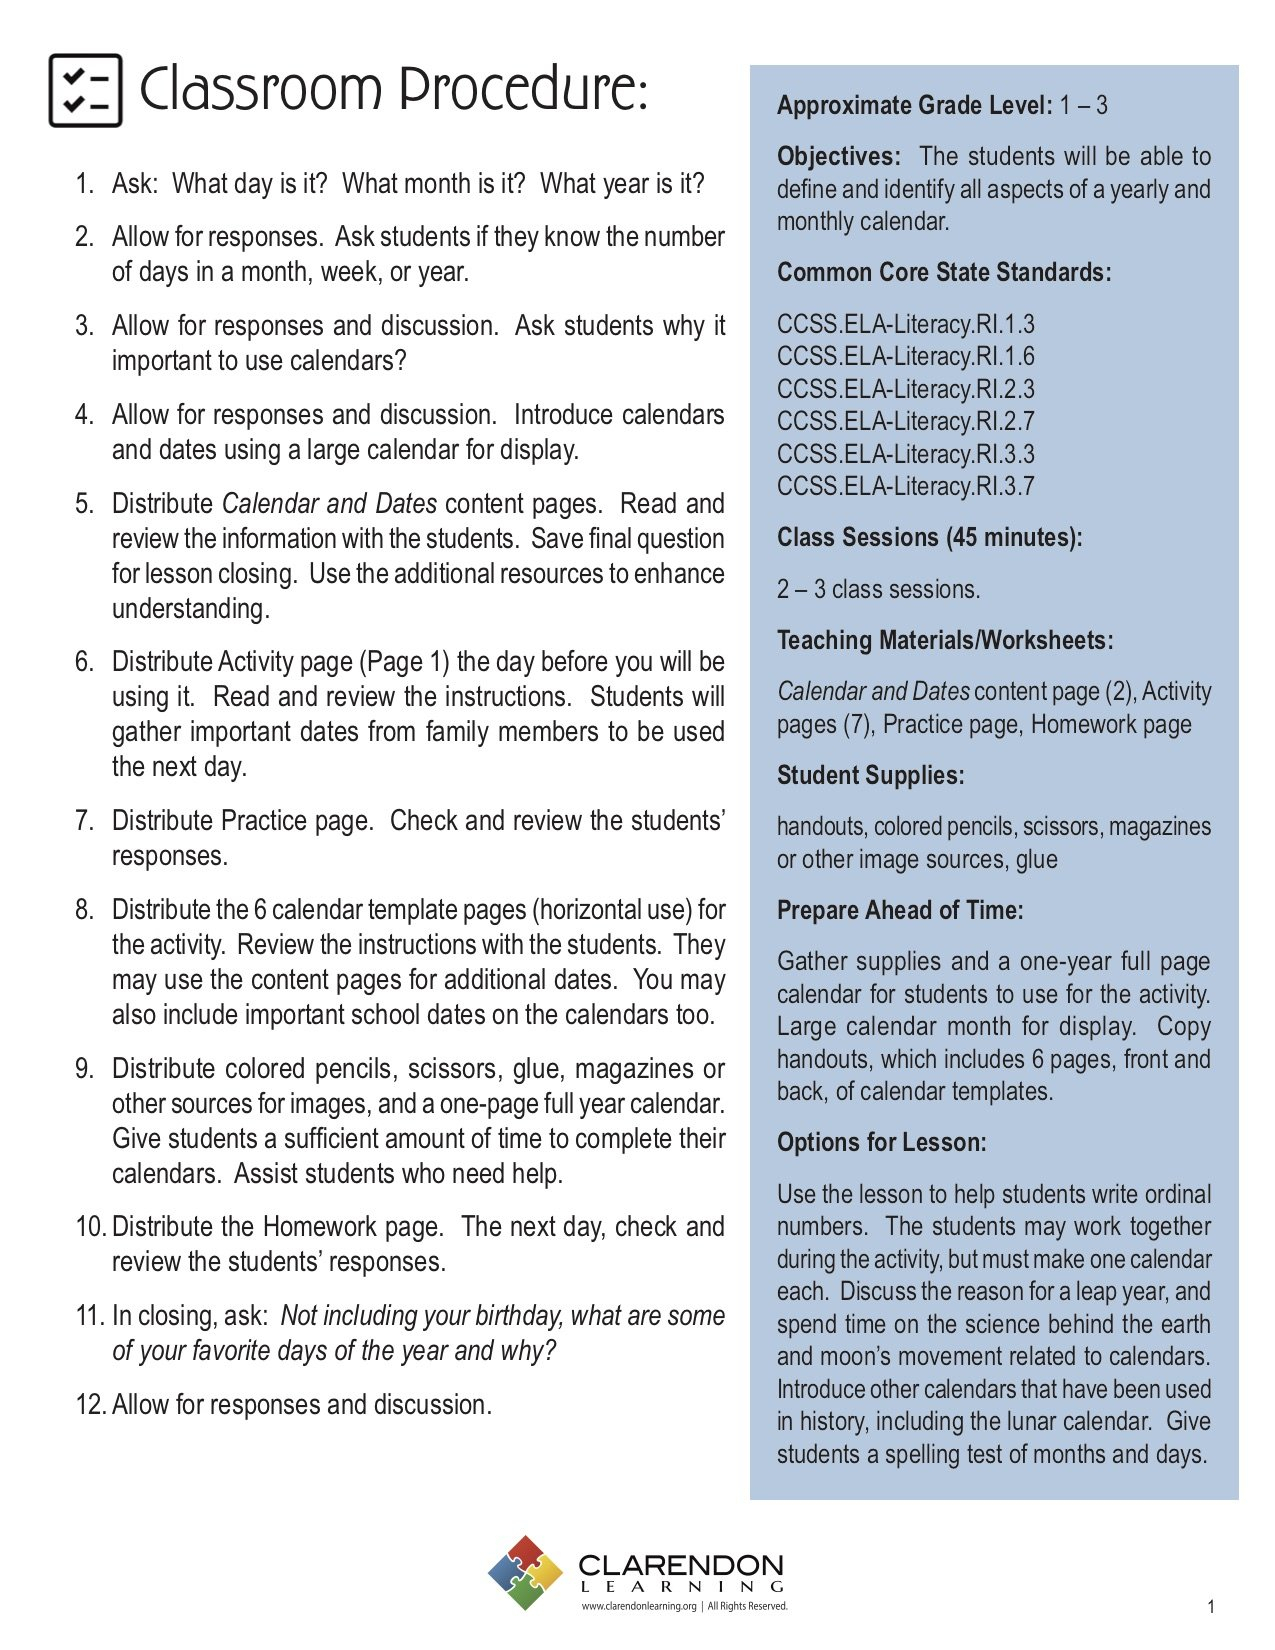 Calendar And Dates Lesson Plan Clarendon Learning